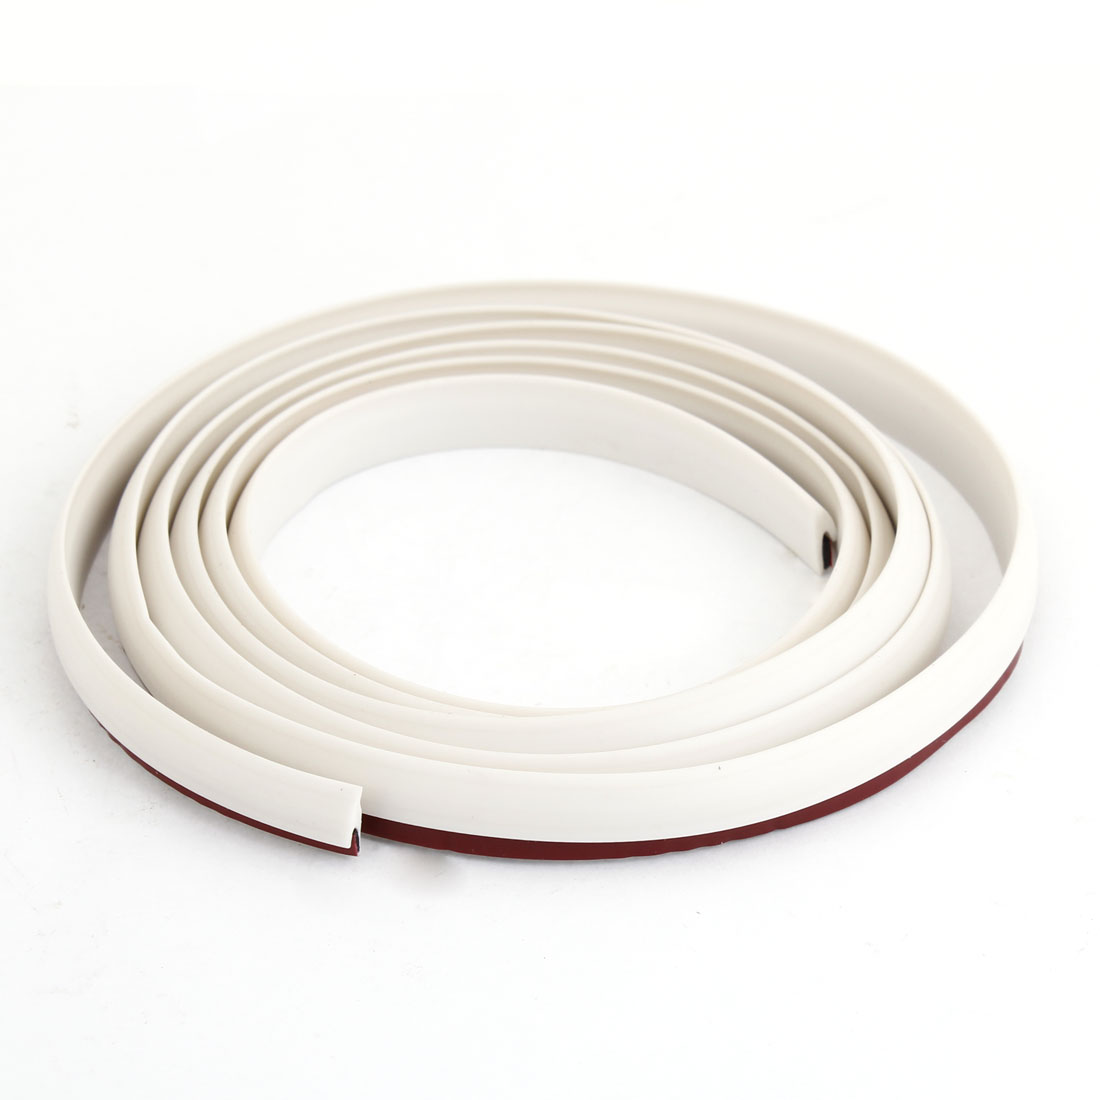 168cm Long White Rubber Strips Air Sealed Door Guards Buffers for Cars